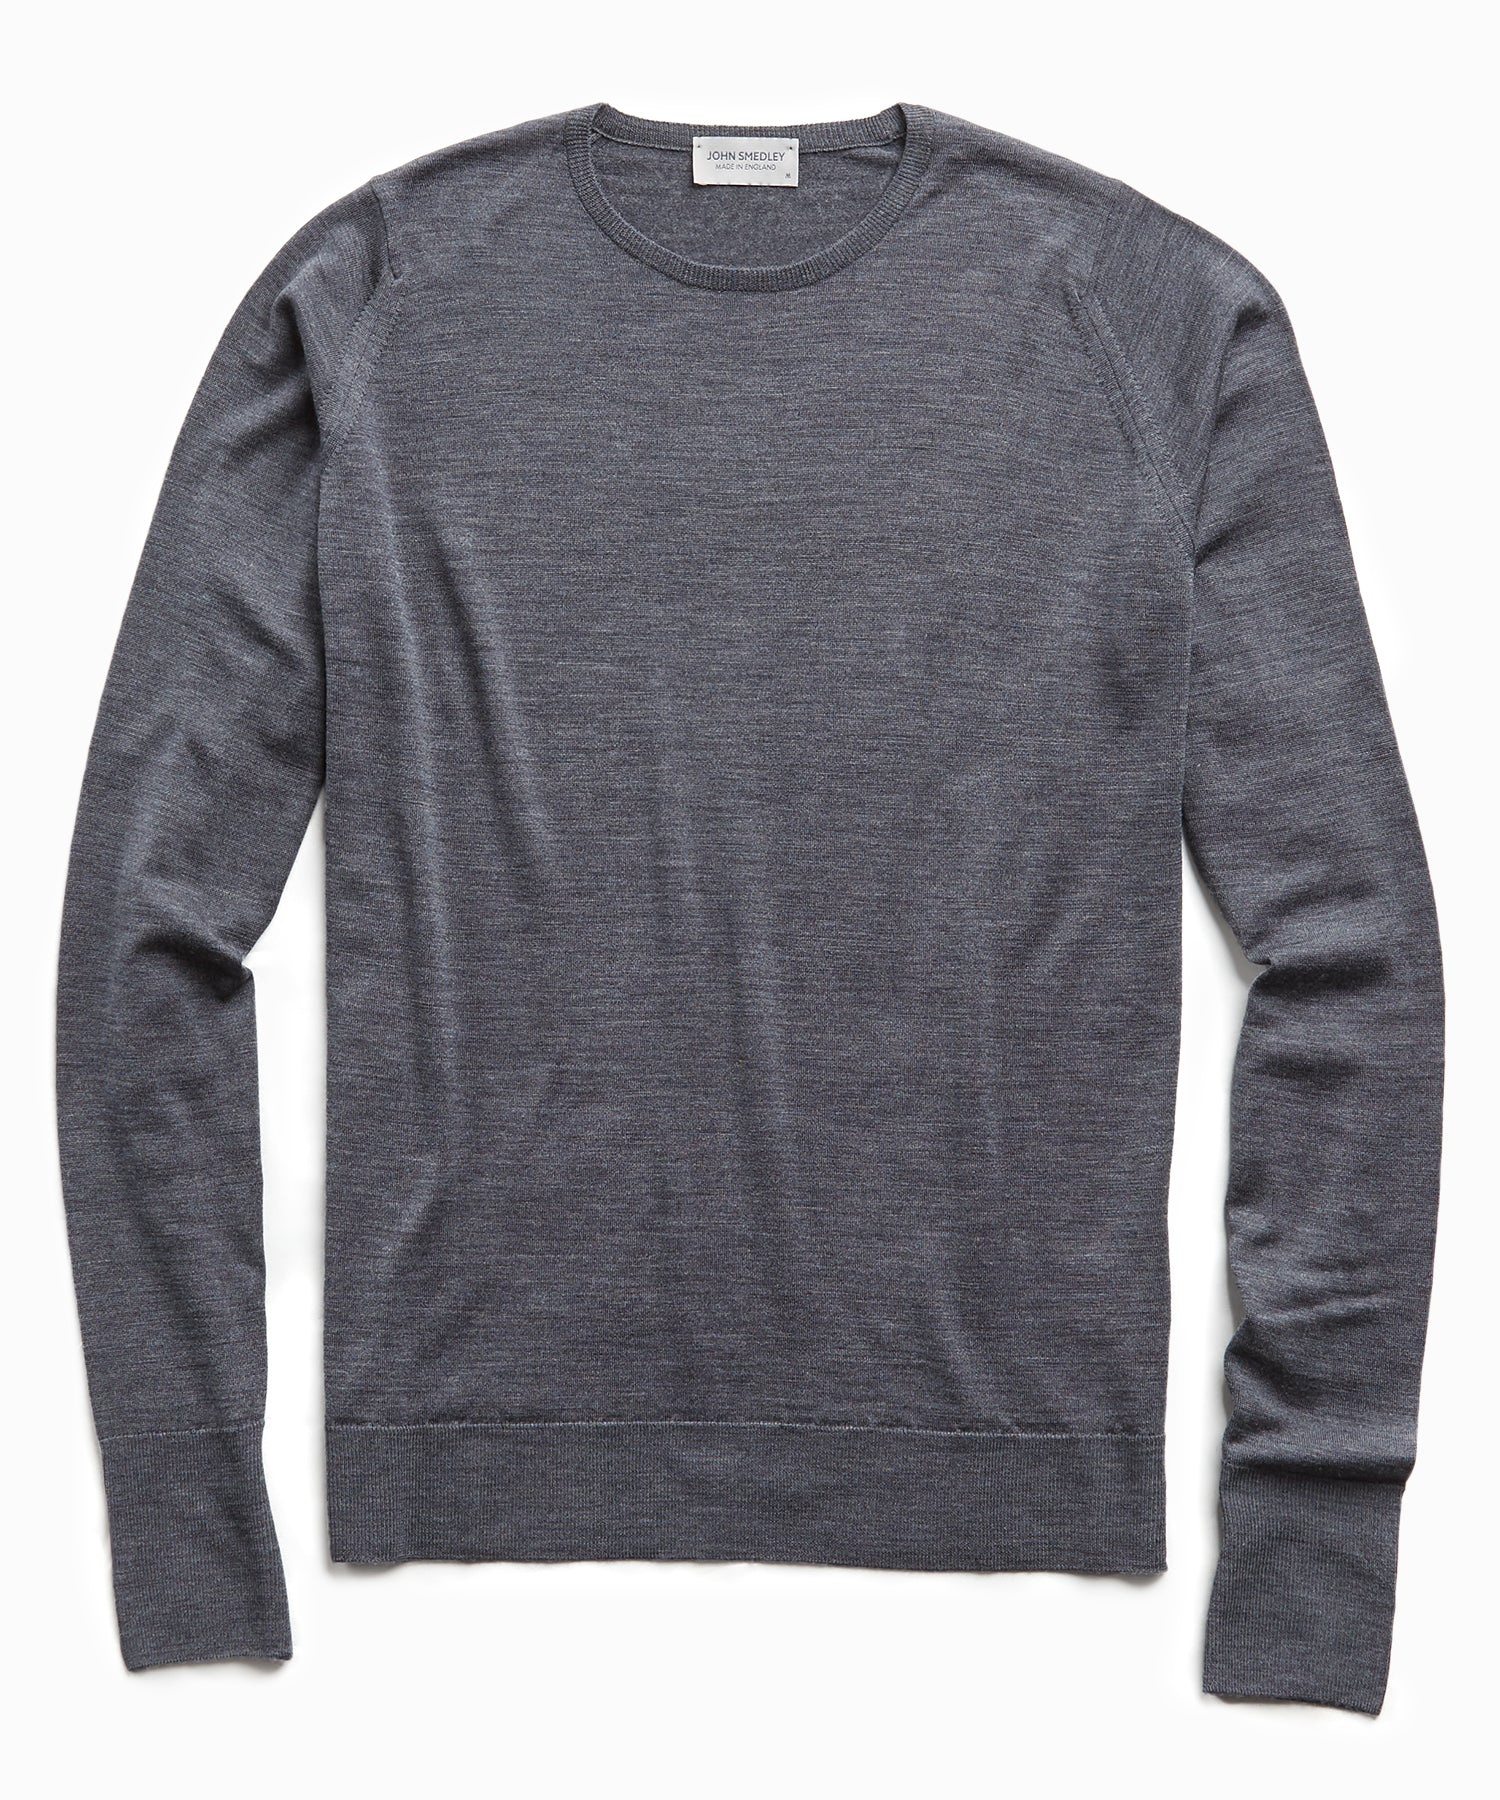 John Smedley Easy Fit Crew in Charcoal